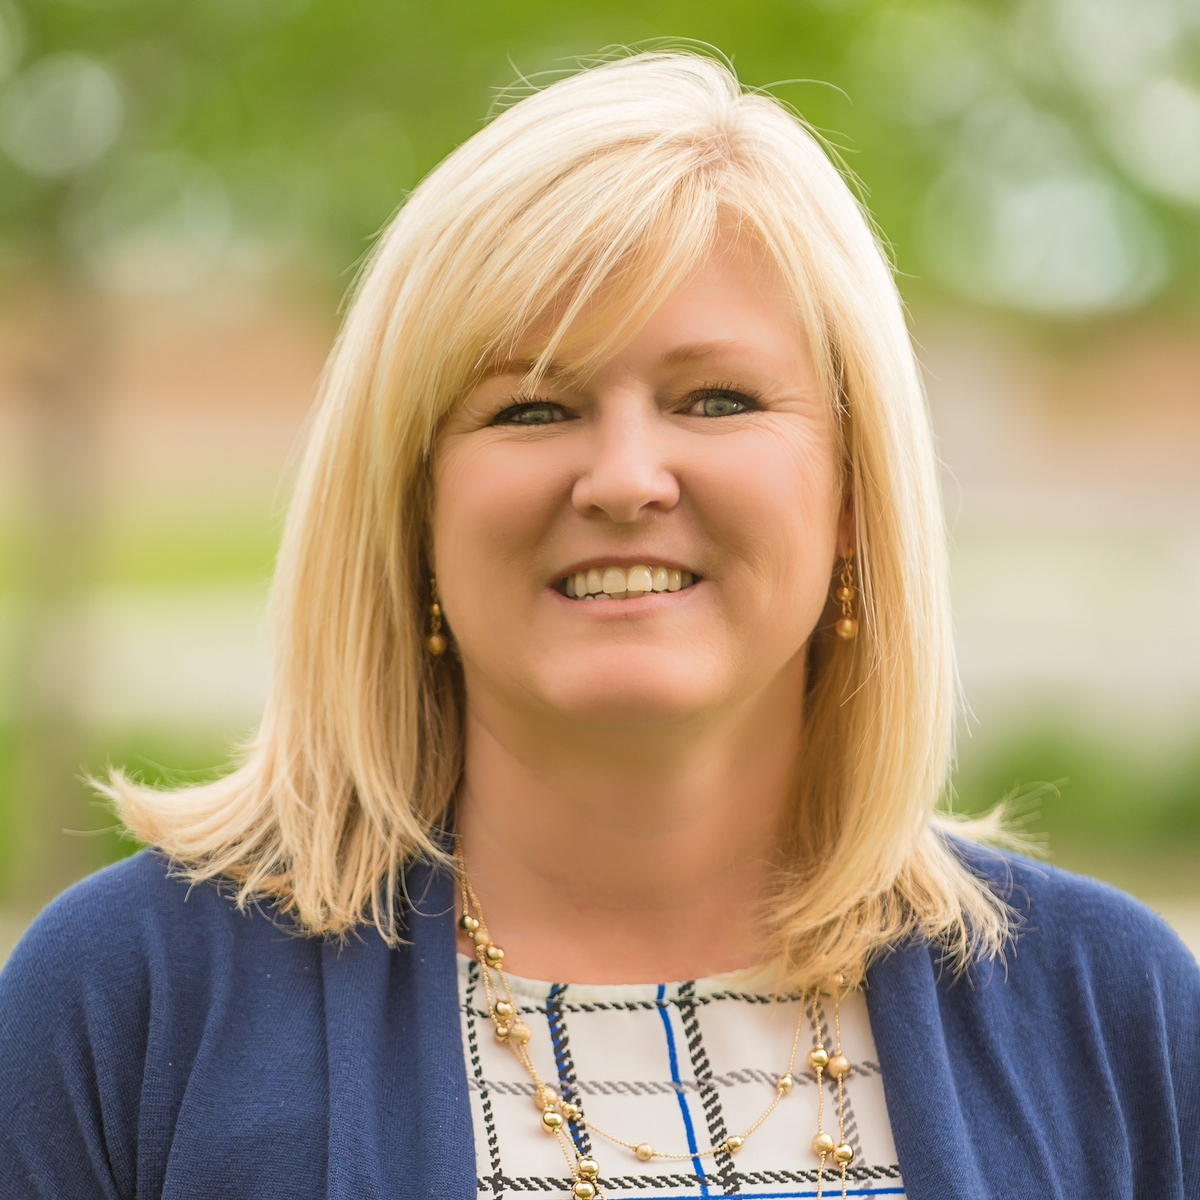 111f1543b59a Nampa Christian Schools is pleased to announce that Preschool Director  Shannon Asselin has been awarded the Scholarship [ ... ]